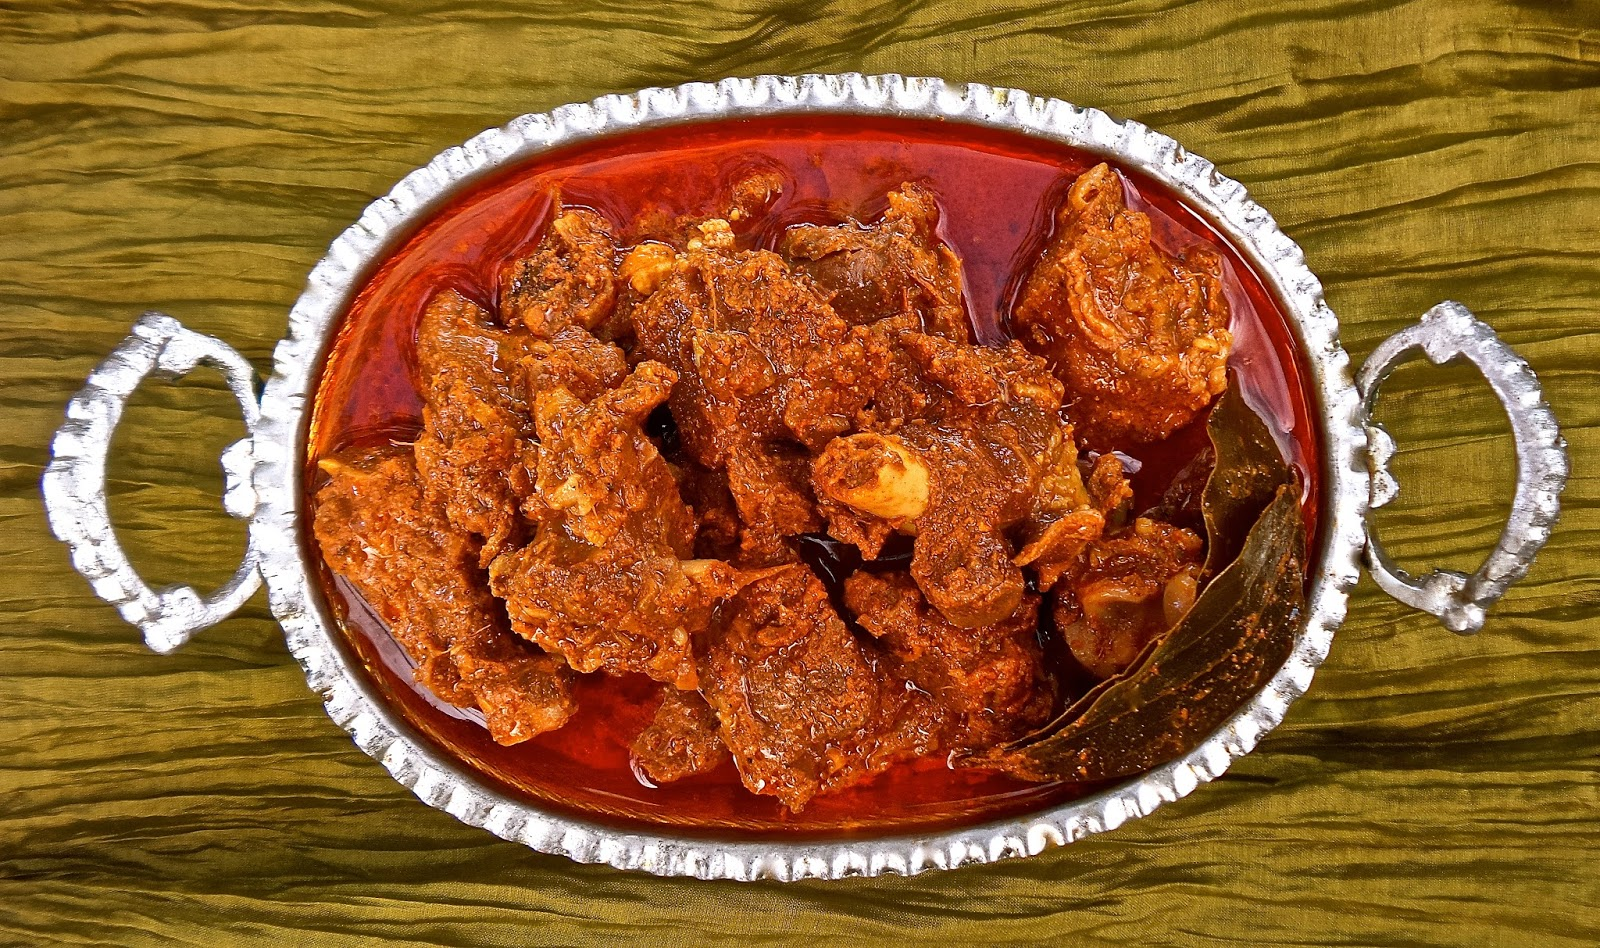 Kashmiri Rogan Josh recipe indian curry lamb easy beef venison Bibi's Easy Rogan Josh, easy, rogan, josh, rogan josh, authentic, beef, curry josh, kashmir, Kashmiri, lamb, meat, Mutton, Non veg, recipe, rogan, venison, goat, mutton,